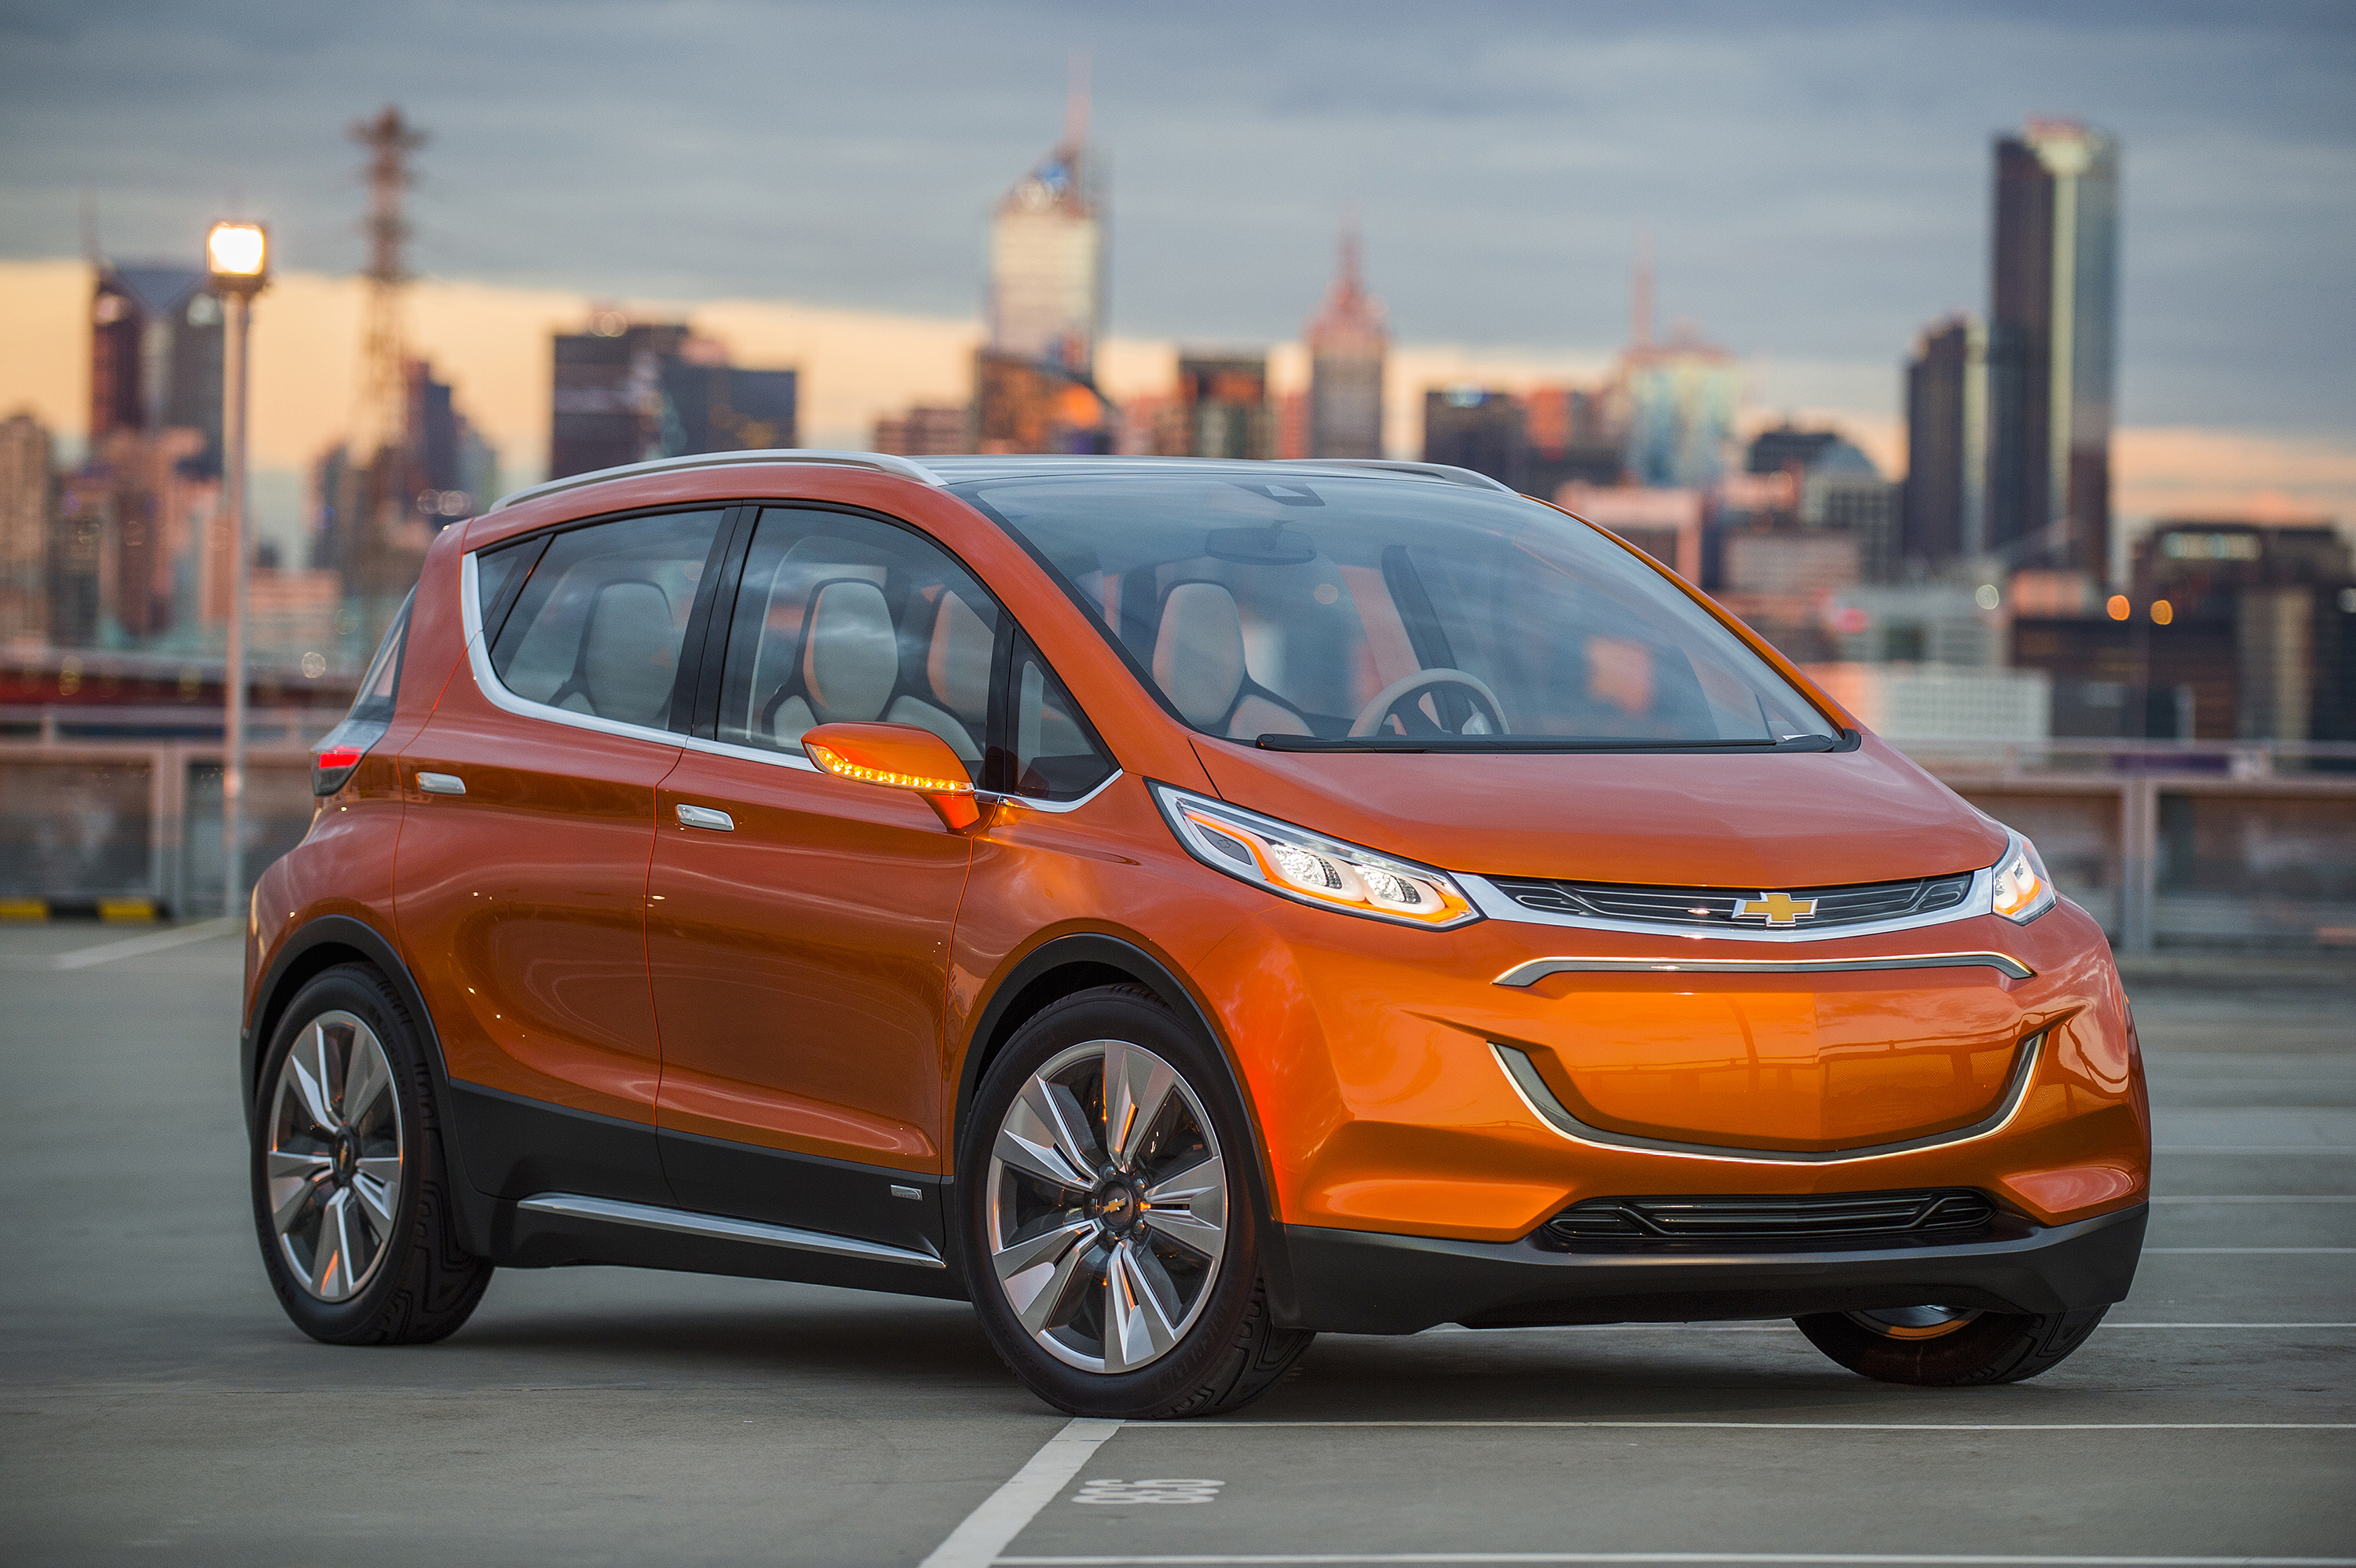 Gm Wont Sell 500000 Evs By 2017 As Promised Will Work Harder To The Electric Car Concept Chevrolet Fnr 4 Photos